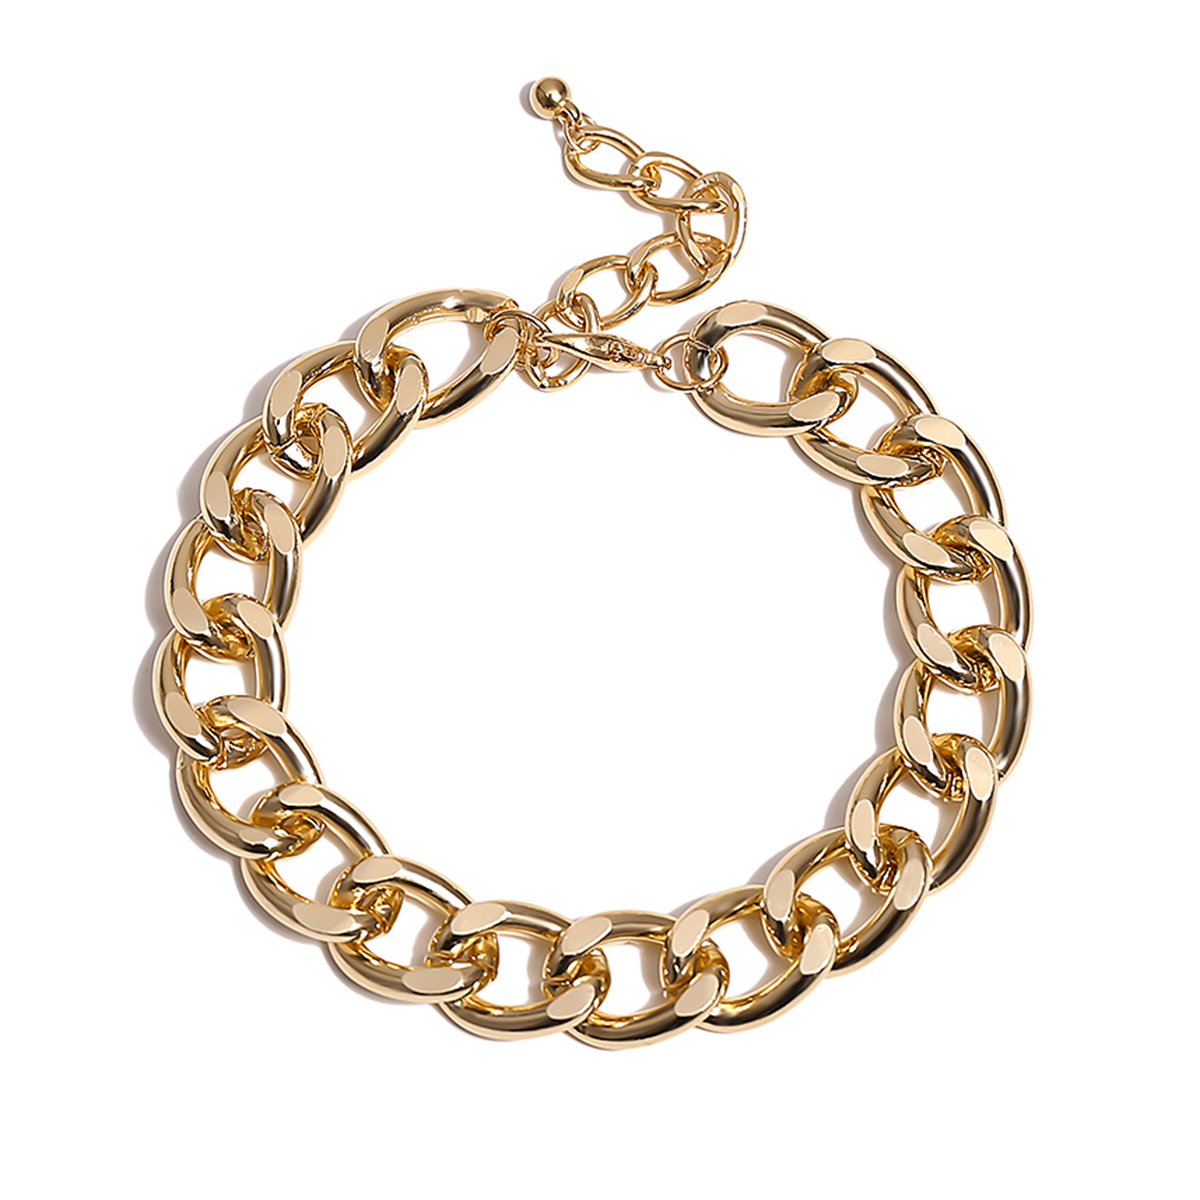 Lacteo Punk Thick Chunky Chain Anklet for Women Statment Fashion Anklet Hip Hop Golden Cross Chain Charm Anklet Female Jewelry 2